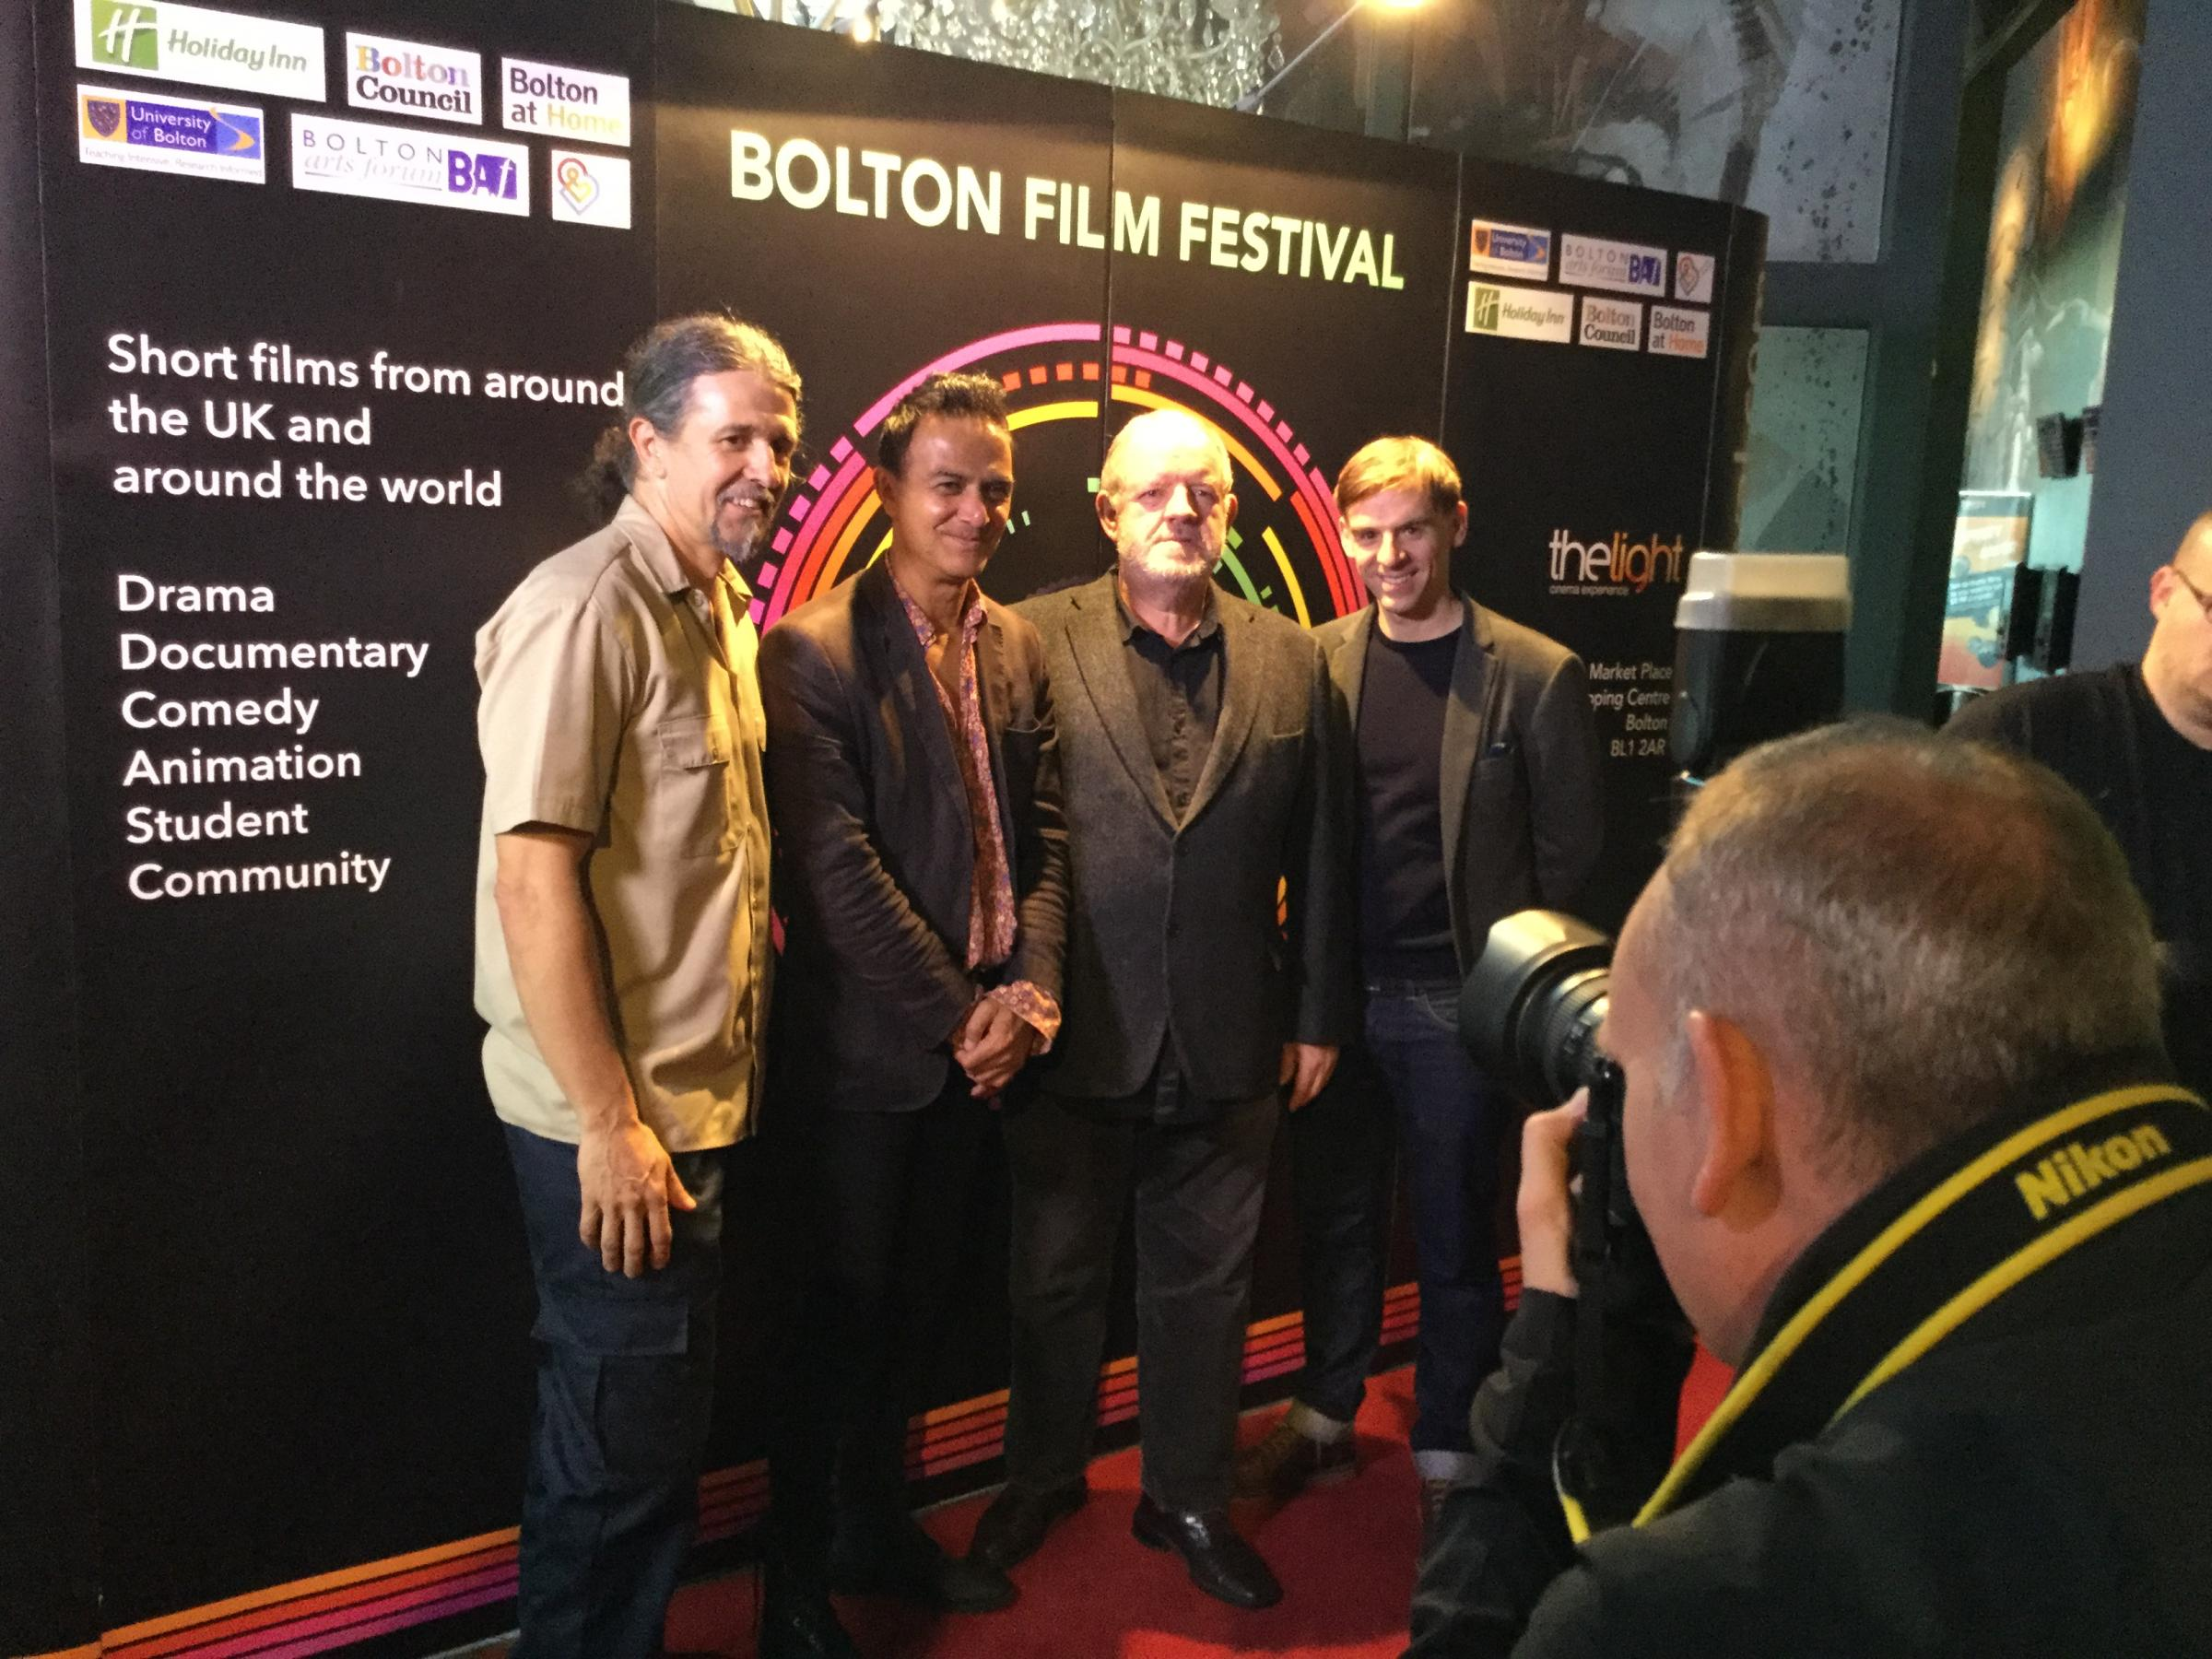 Guest arrive on the Bolton Film Festival red carpet, including actors Ian Aspinall and John Henshaw (centre)